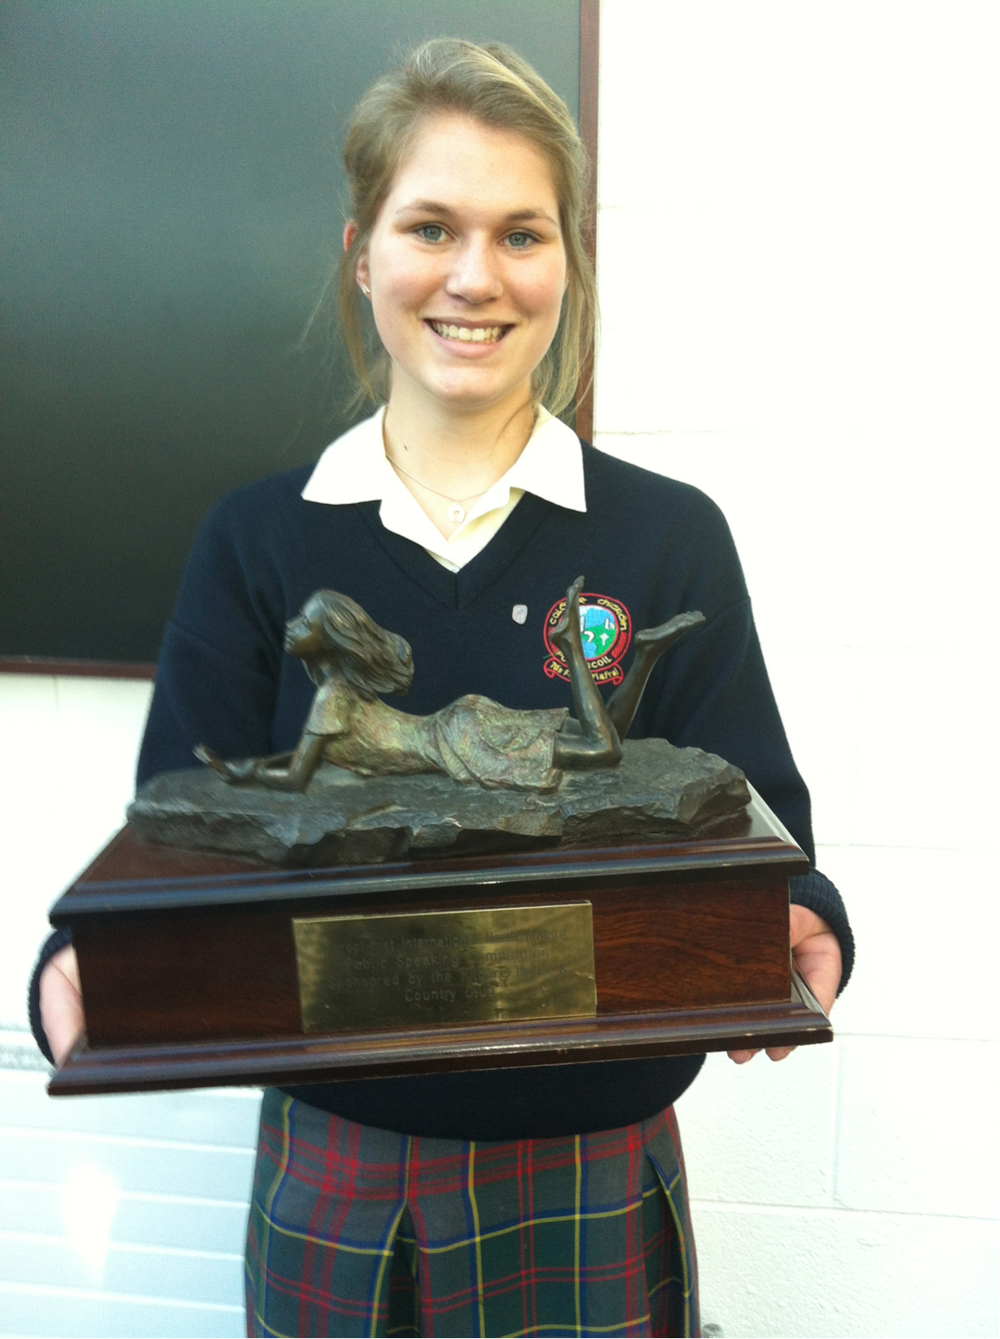 Eliana Jupe with the trophy she won at the